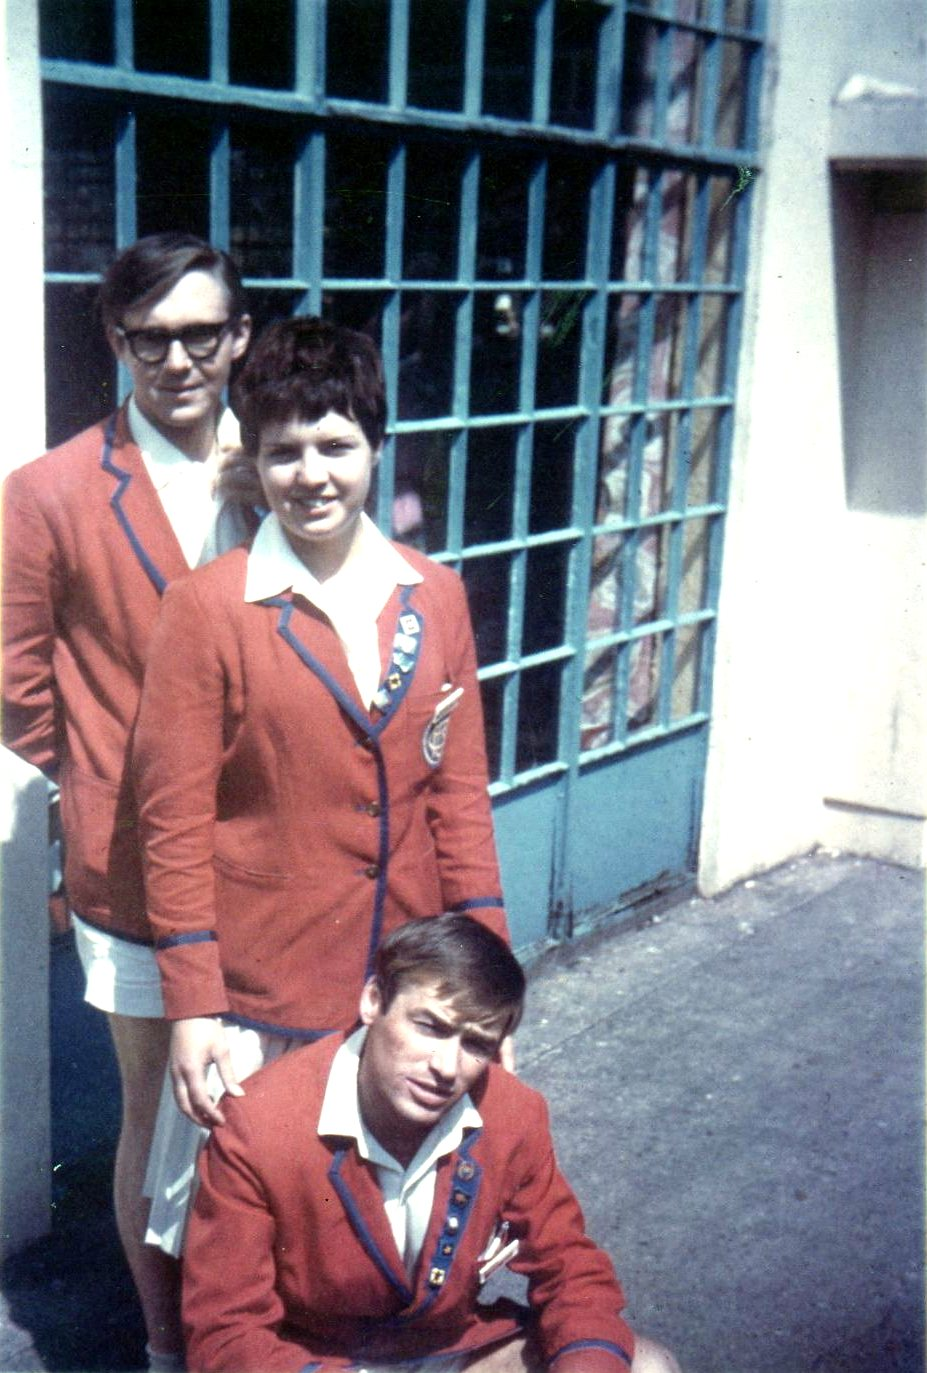 Butlins Filey 1966 at Redcoats Reunited Richard 2